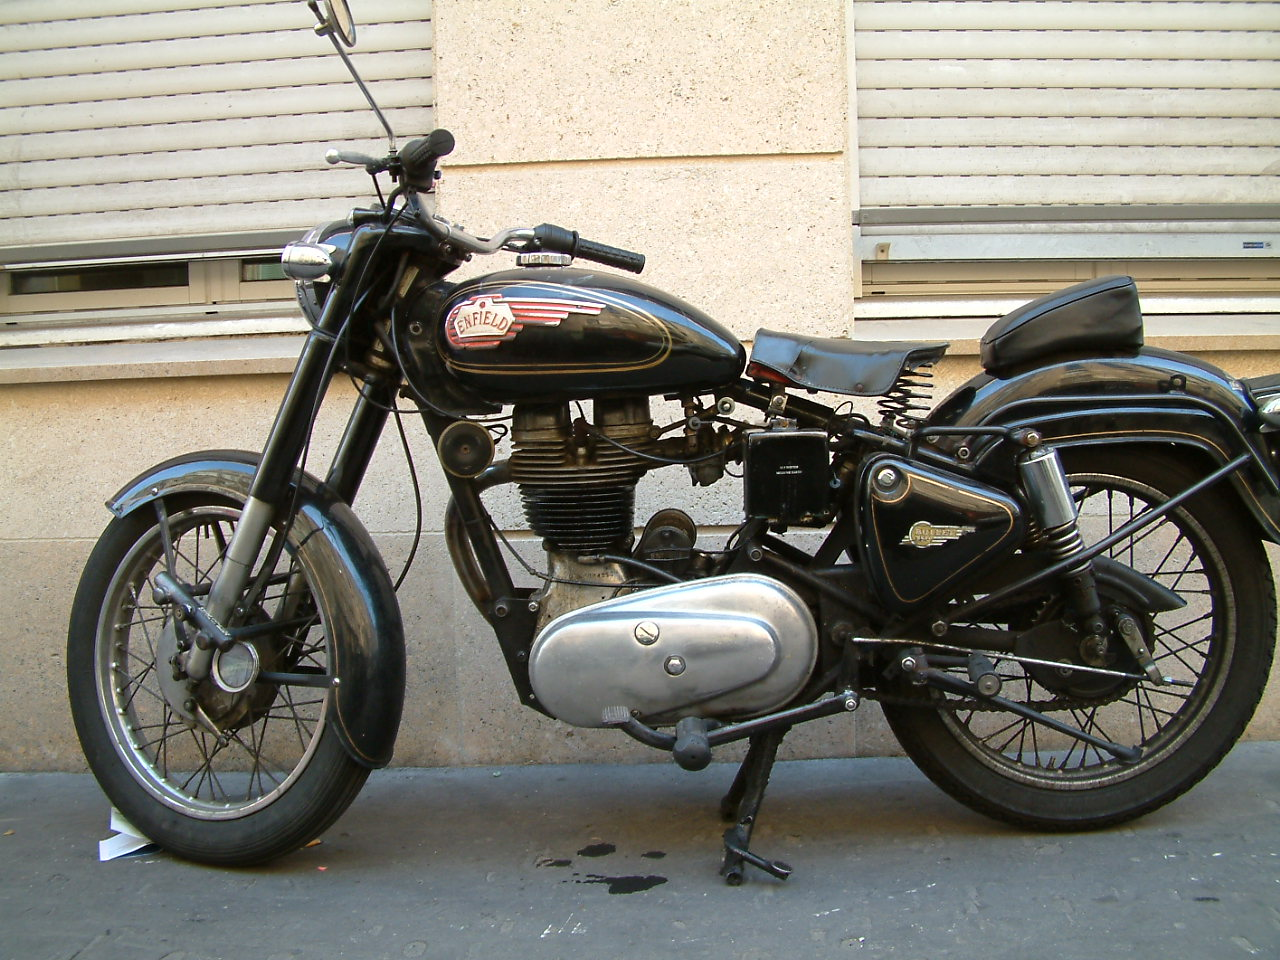 Royal enfield bullet pictures - File Royal Enfield Bullet Jpg